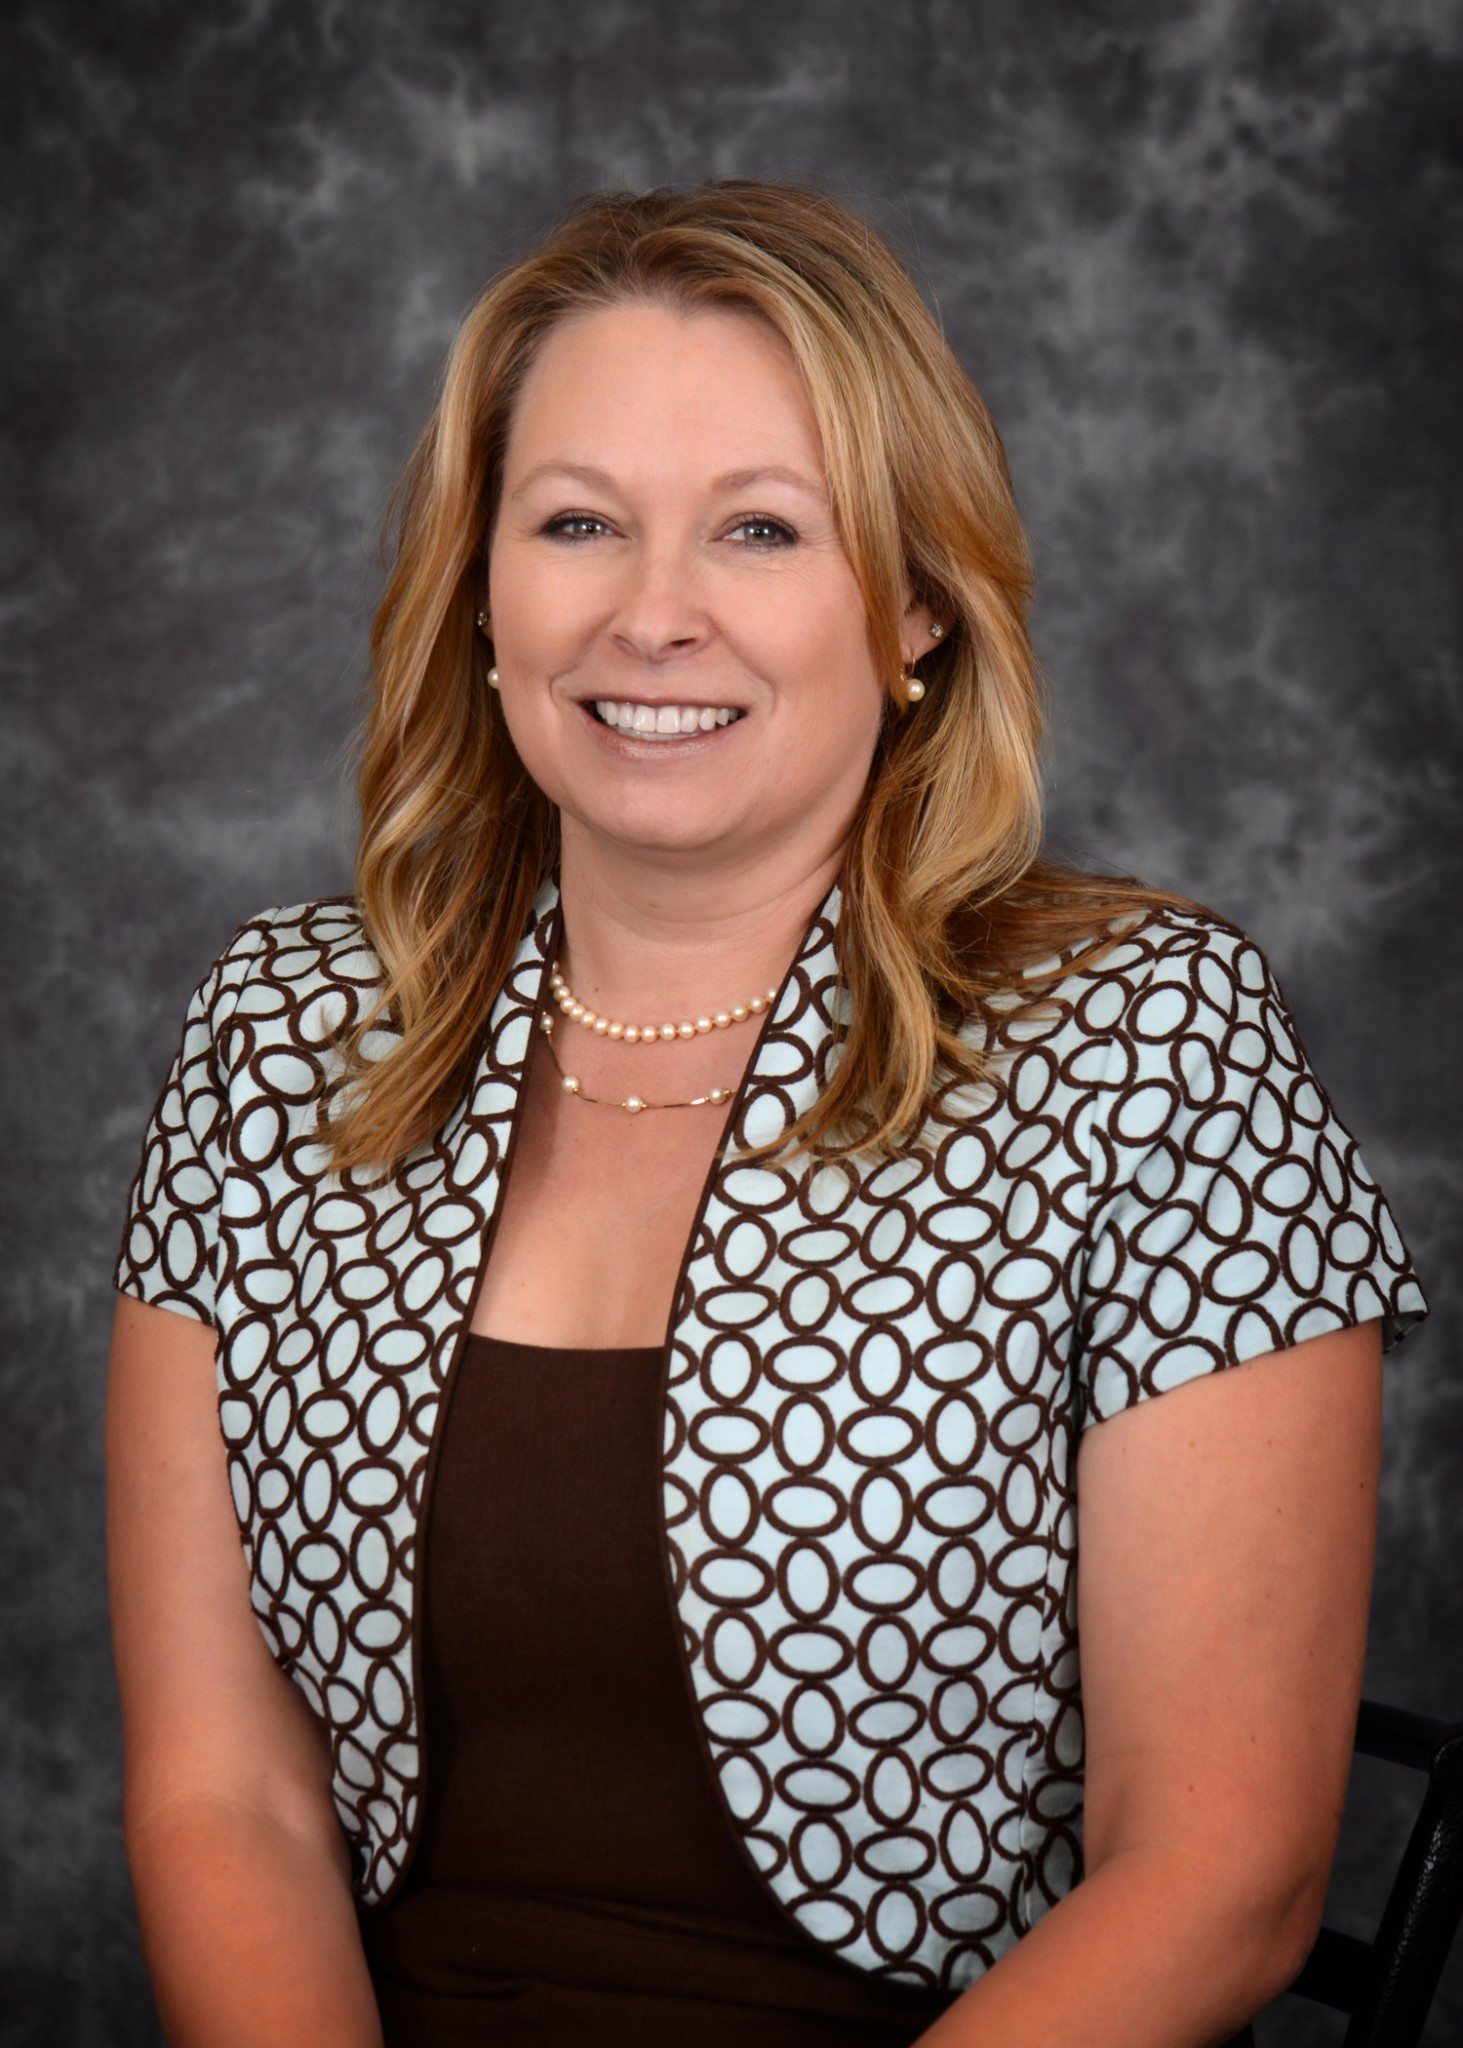 Associate Superintendent, Angela Gruenwald